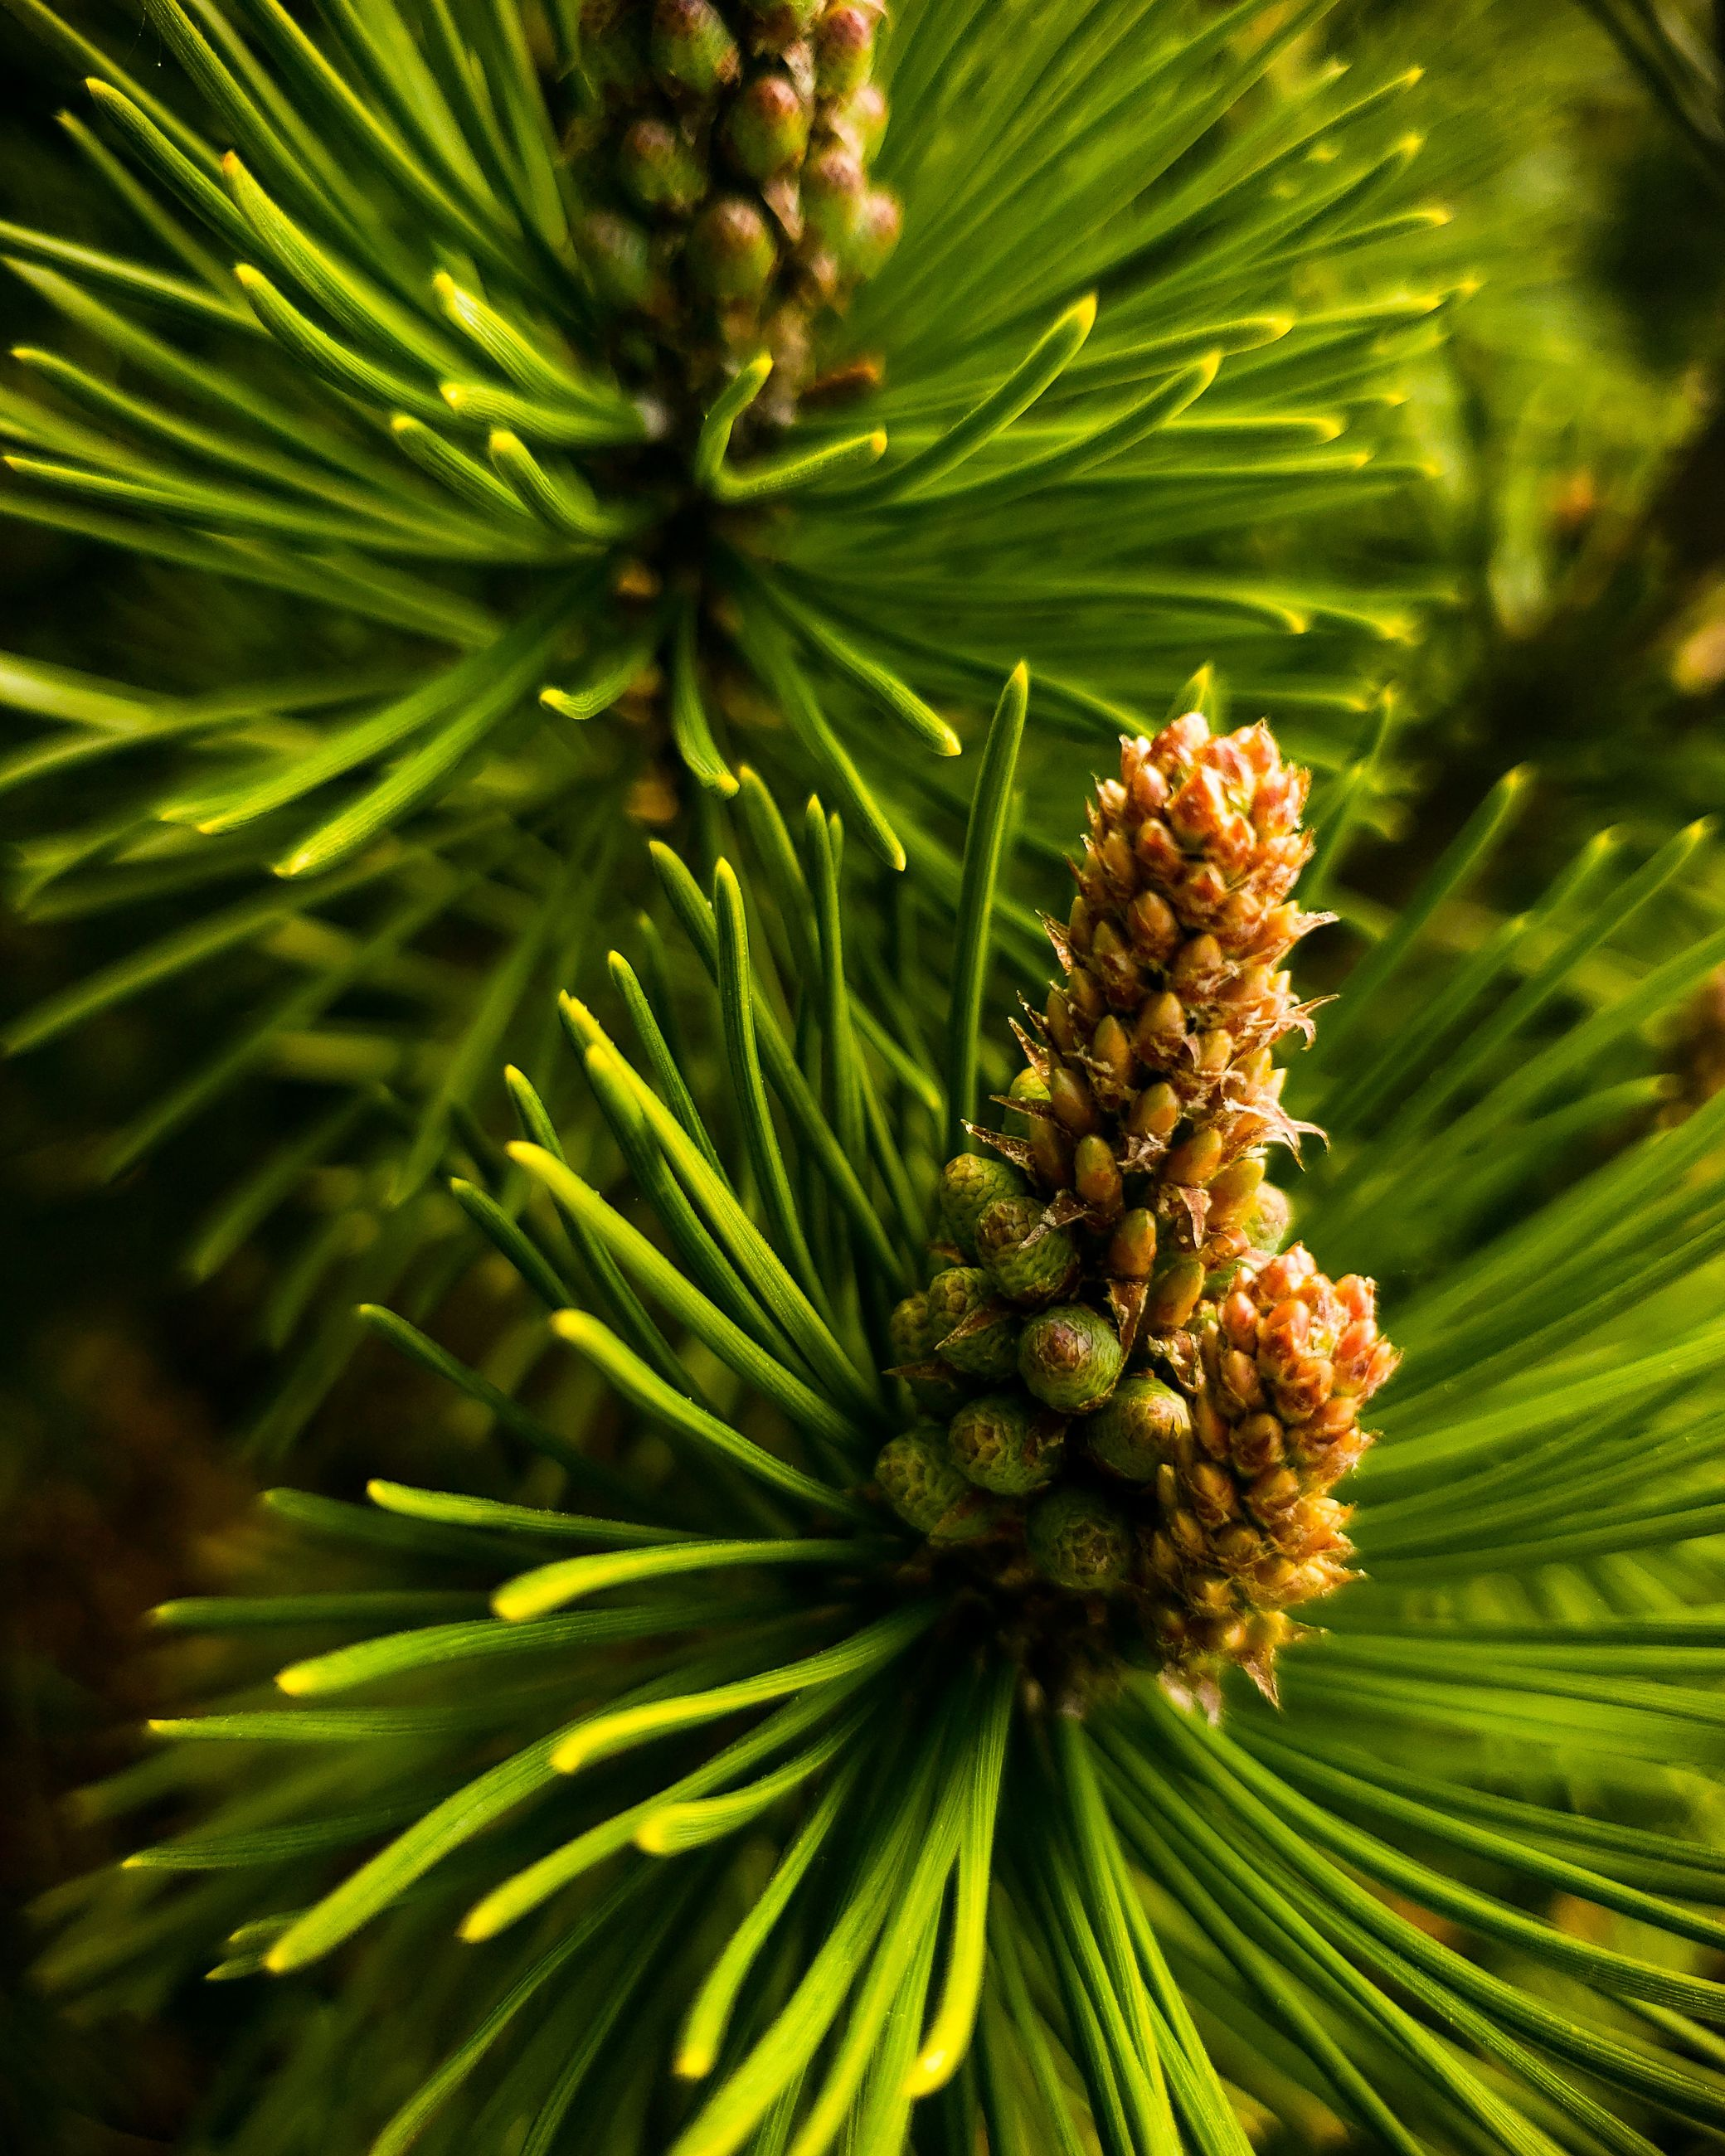 plant, growth, green color, pine cone, tree, no people, beauty in nature, focus on foreground, nature, close-up, pine tree, day, coniferous tree, branch, freshness, pinaceae, outdoors, needle - plant part, tranquility, selective focus